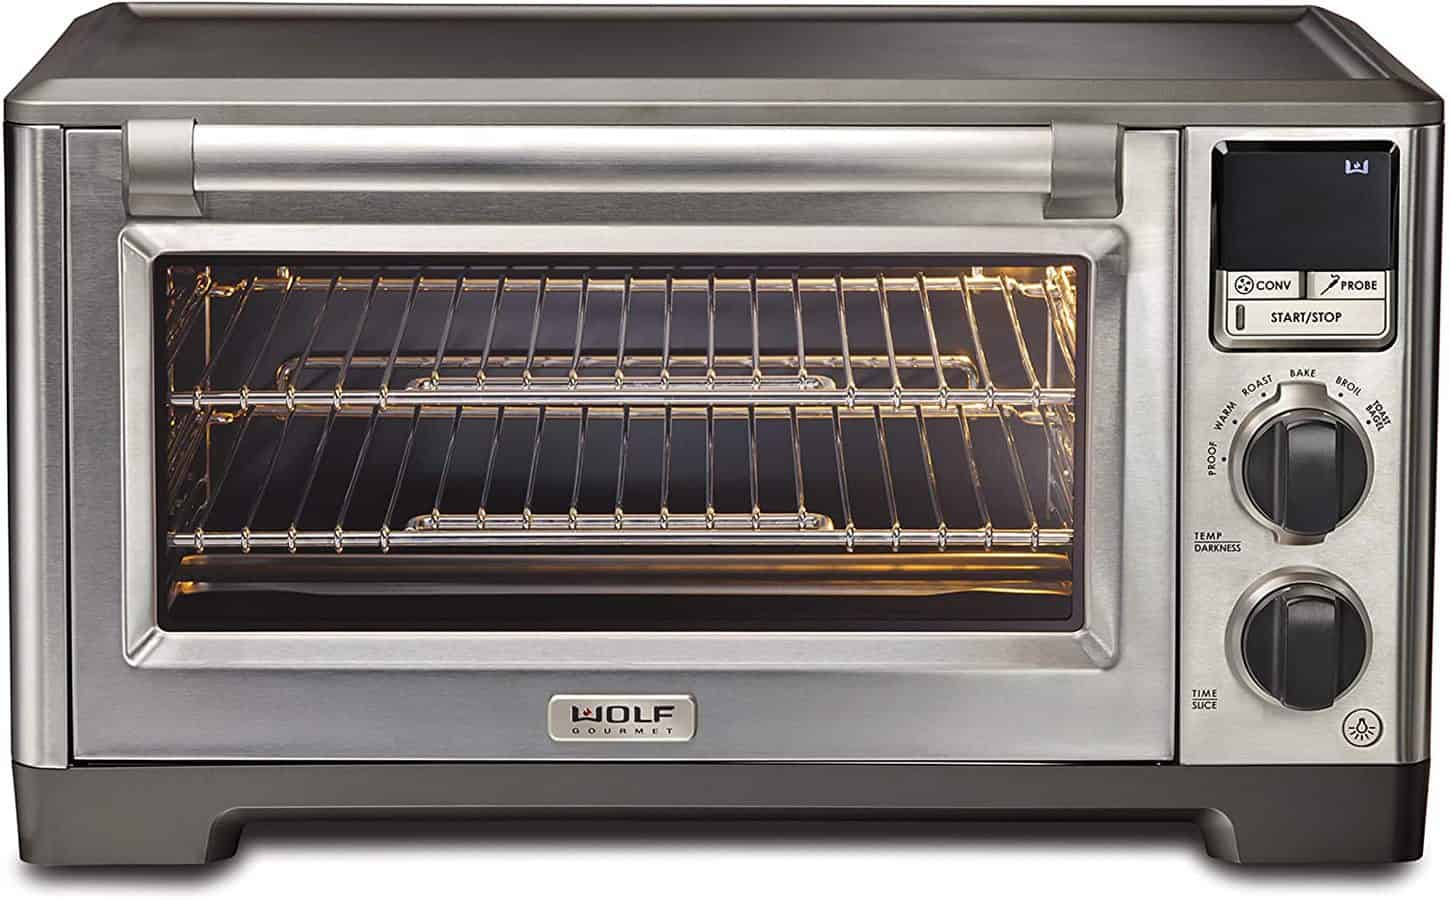 9 Best Countertop Convection Ovens Of 2020 Updated Robust Kitchen